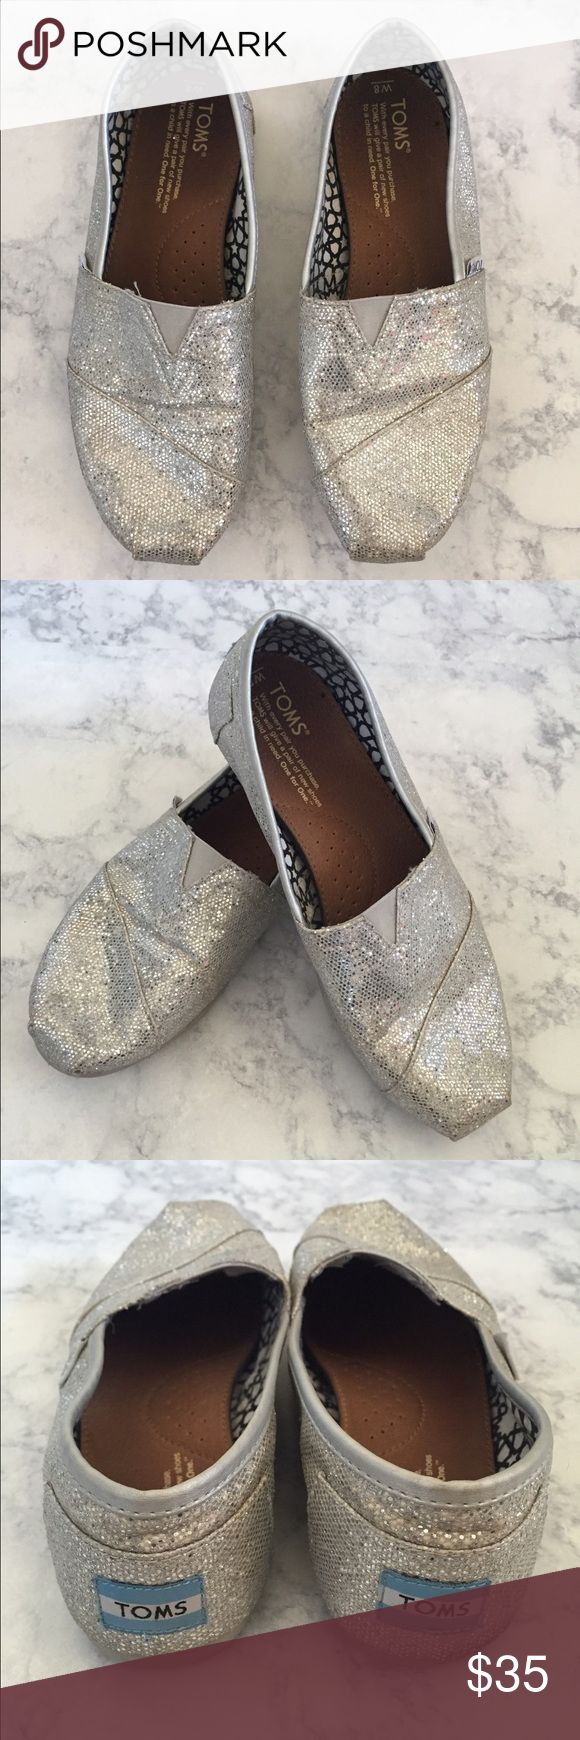 [TOMS] sequin silver flats sz8 [TOMS] women's sequin silver flats sz8 •🆕listing •good pre-owned condition •silver sequin design •all sequins appear in place •subtle color darkening to right heel and subtle wear of rubber soles •offers welcomed using the offer feature or bundle for the best discount••• TOMS Shoes Flats & Loafers